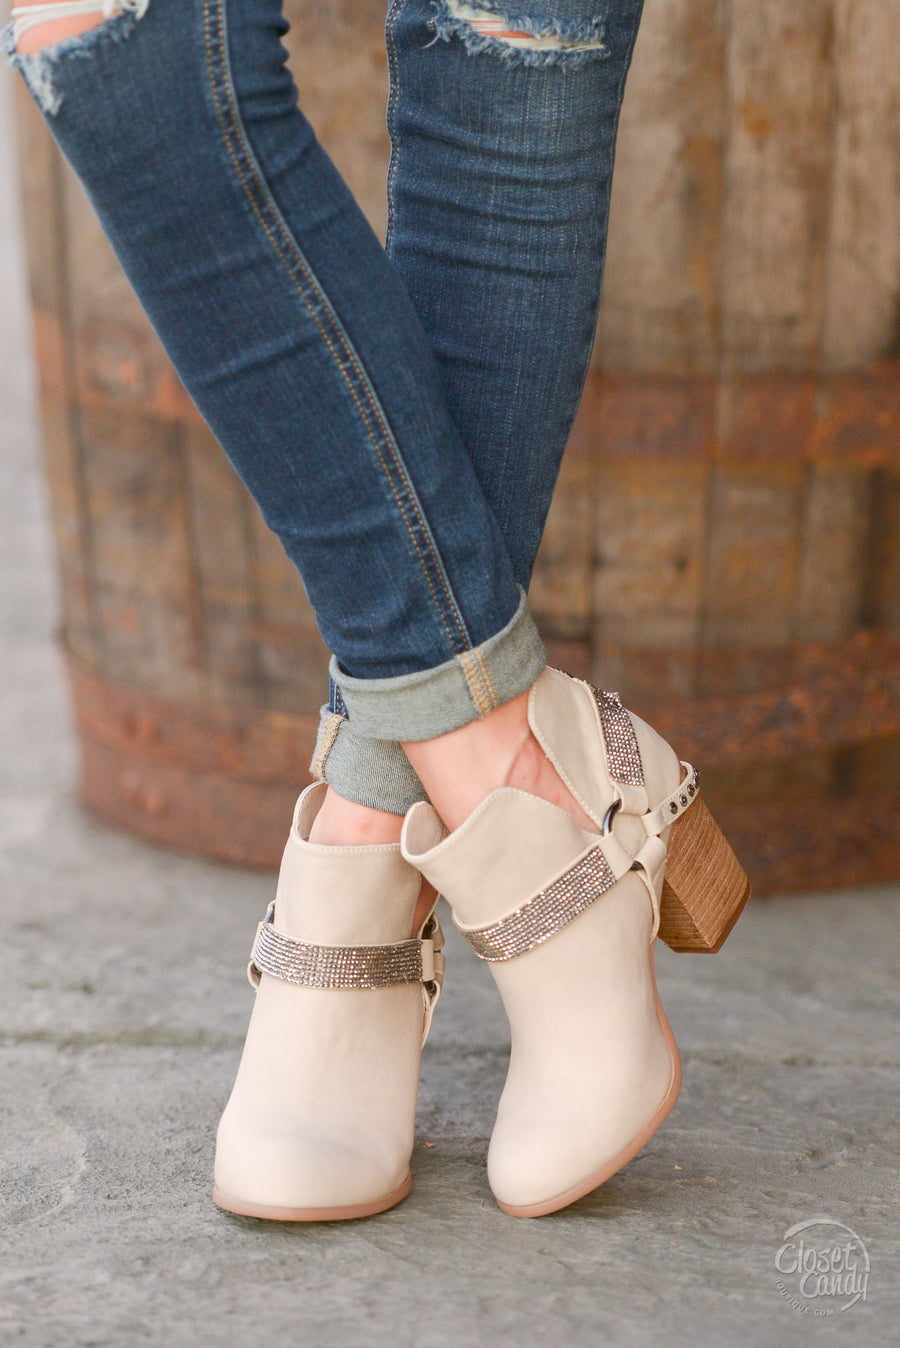 Leave Some Sparkle Booties - Cream sparkle strap booties, side, Closet Candy Boutique